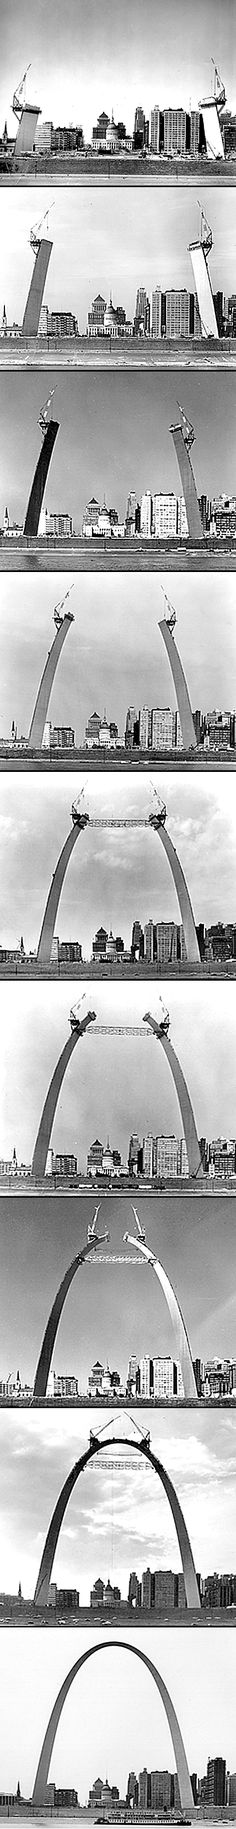 The Gateway Arch was designed by Finnish-American architect Eero Saarinen and German-American structural engineer Hannskarl Bandel in 1947. Construction began on February 12, 1963, and ended on October 28, 1965. The monument opened to the public on June 10, 1967.